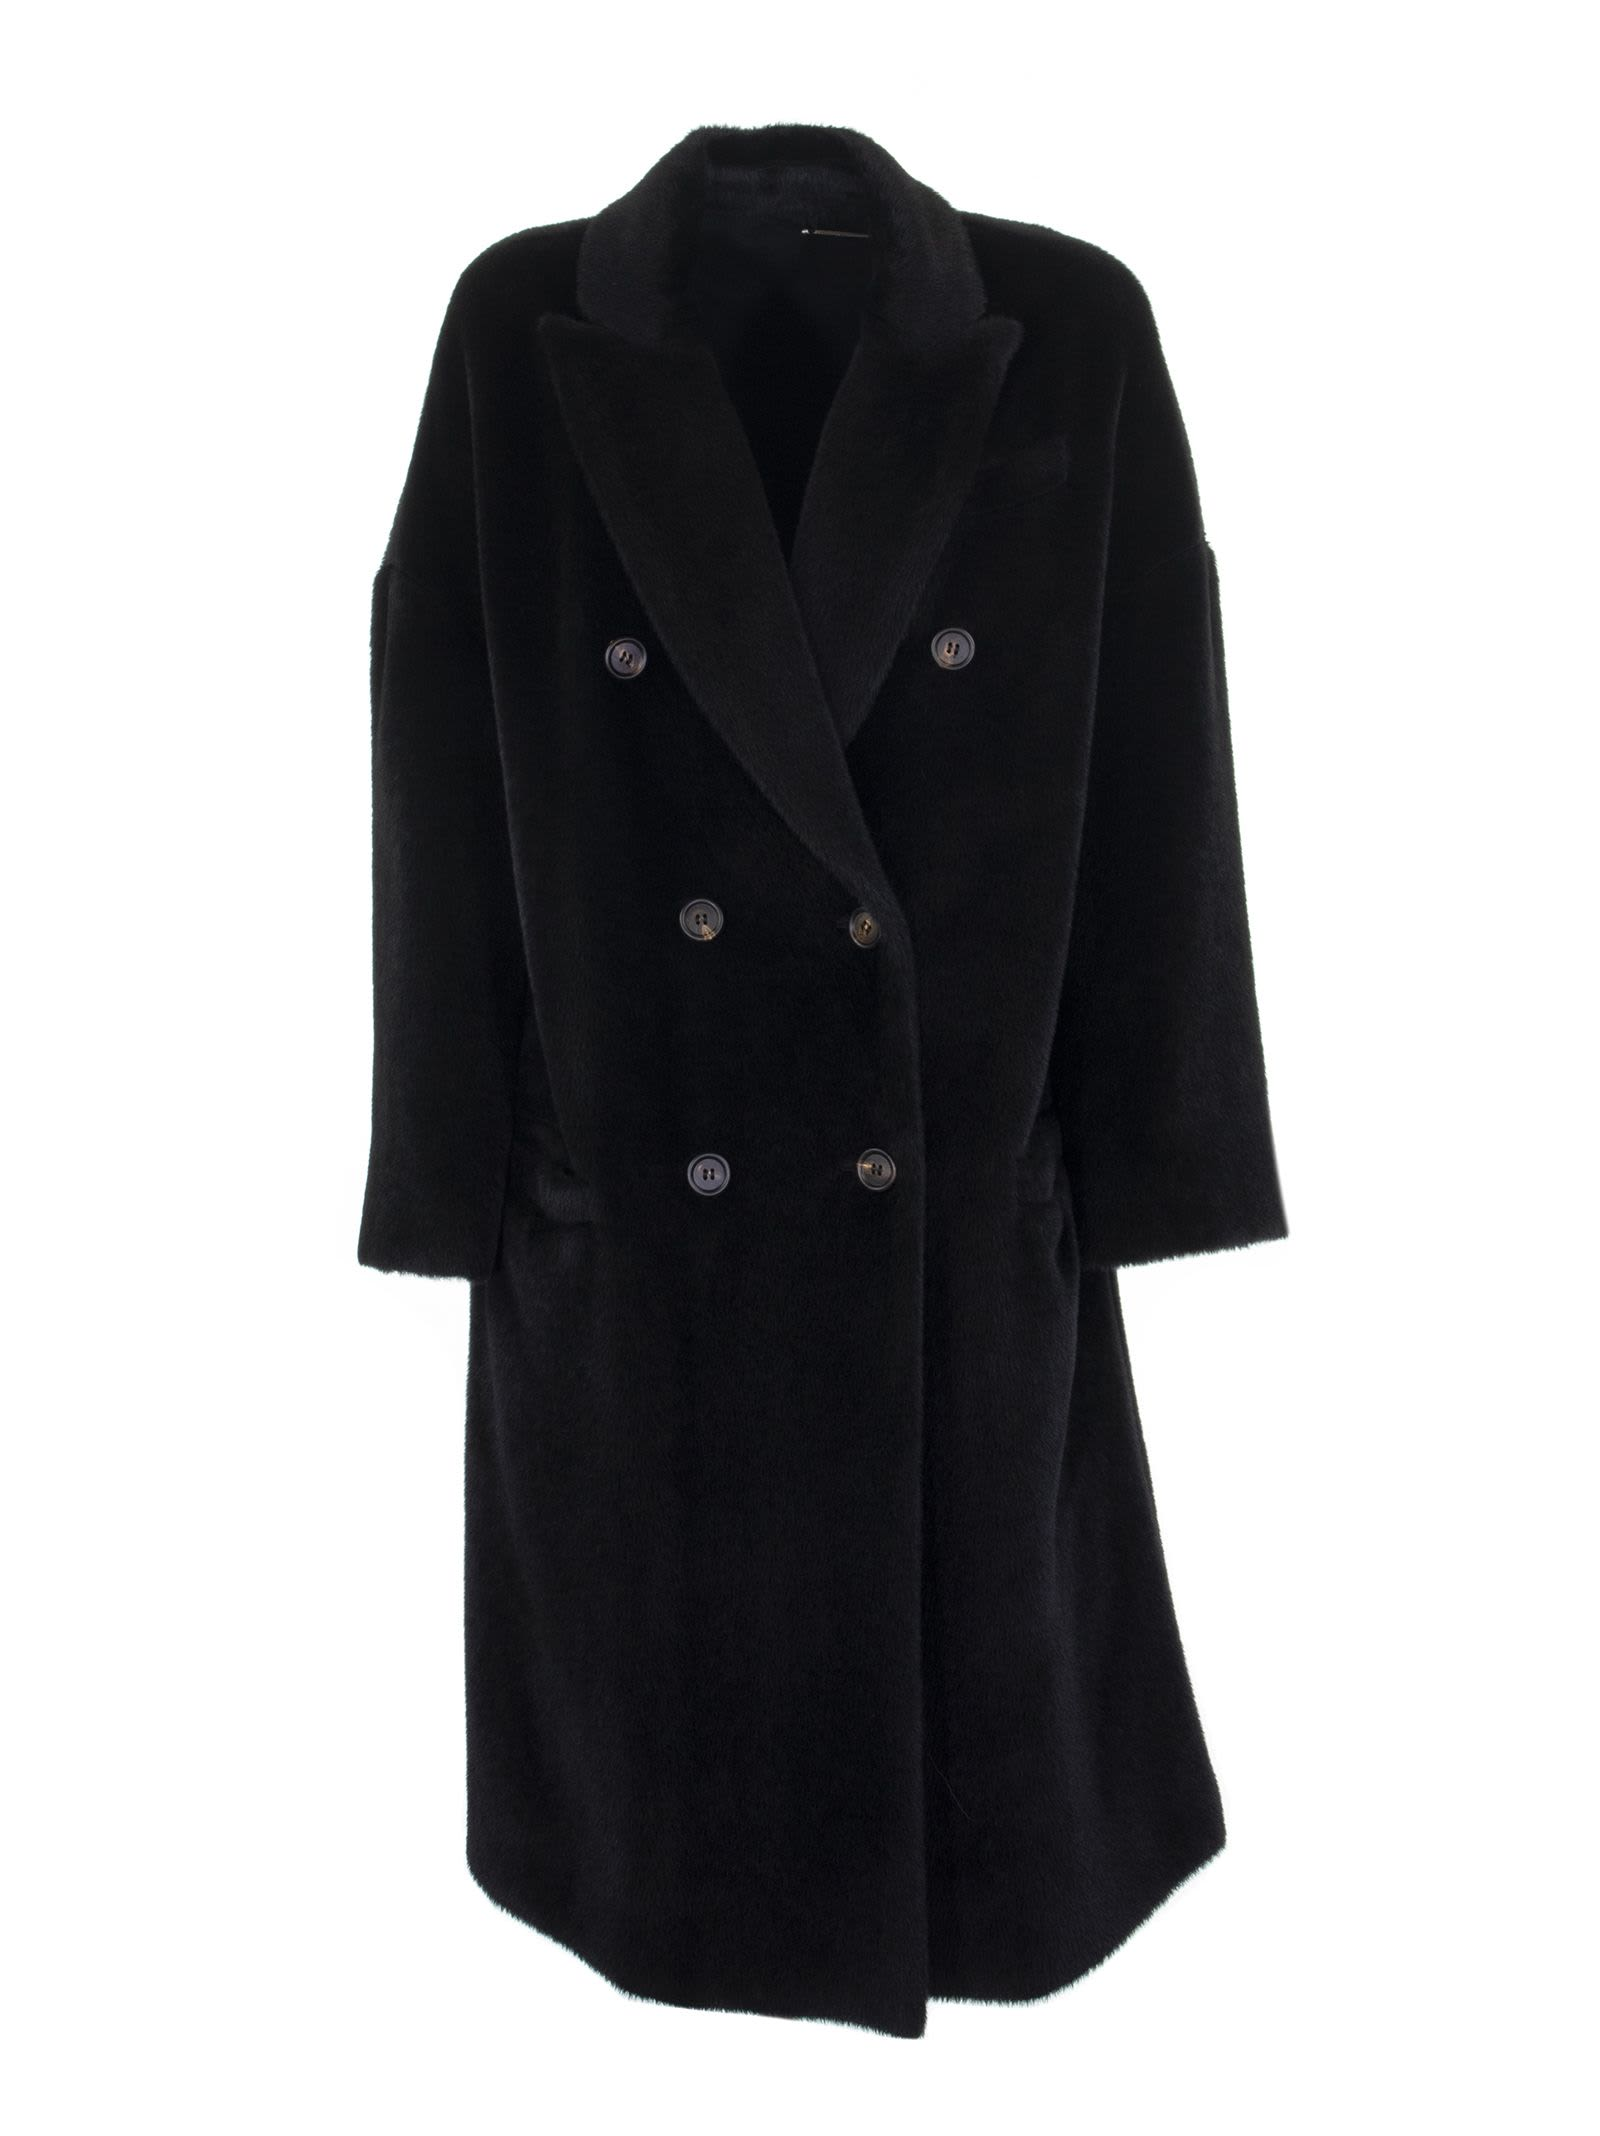 Brunello Cucinelli Black Alpaca And Virgin Wool Coat